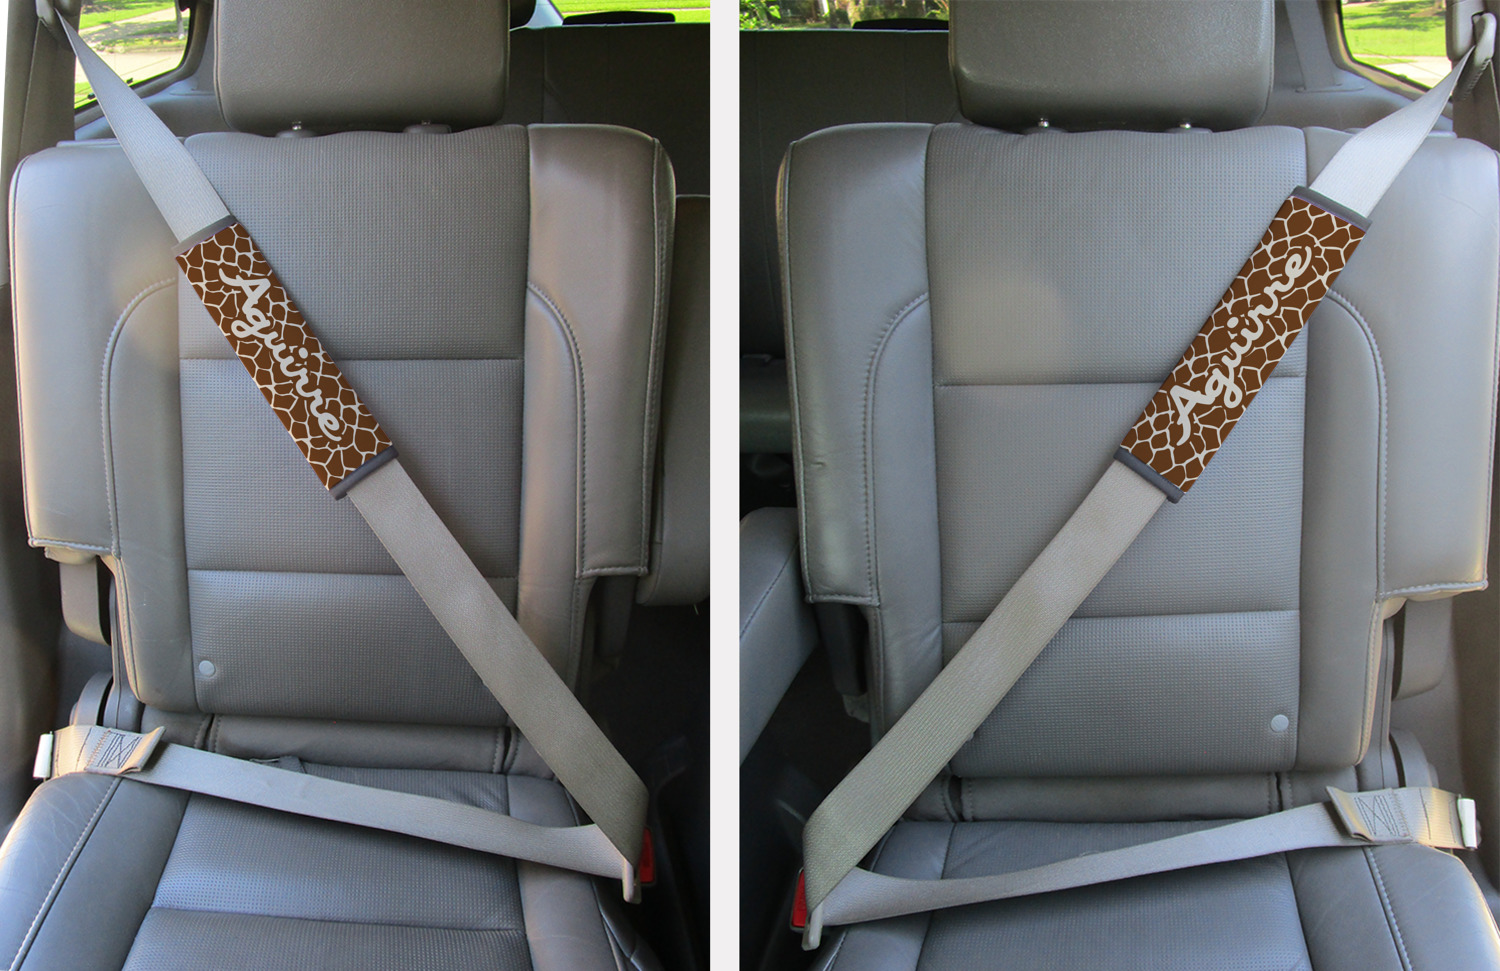 Strange Giraffe Print Seat Belt Covers Set Of 2 Personalized Alphanode Cool Chair Designs And Ideas Alphanodeonline